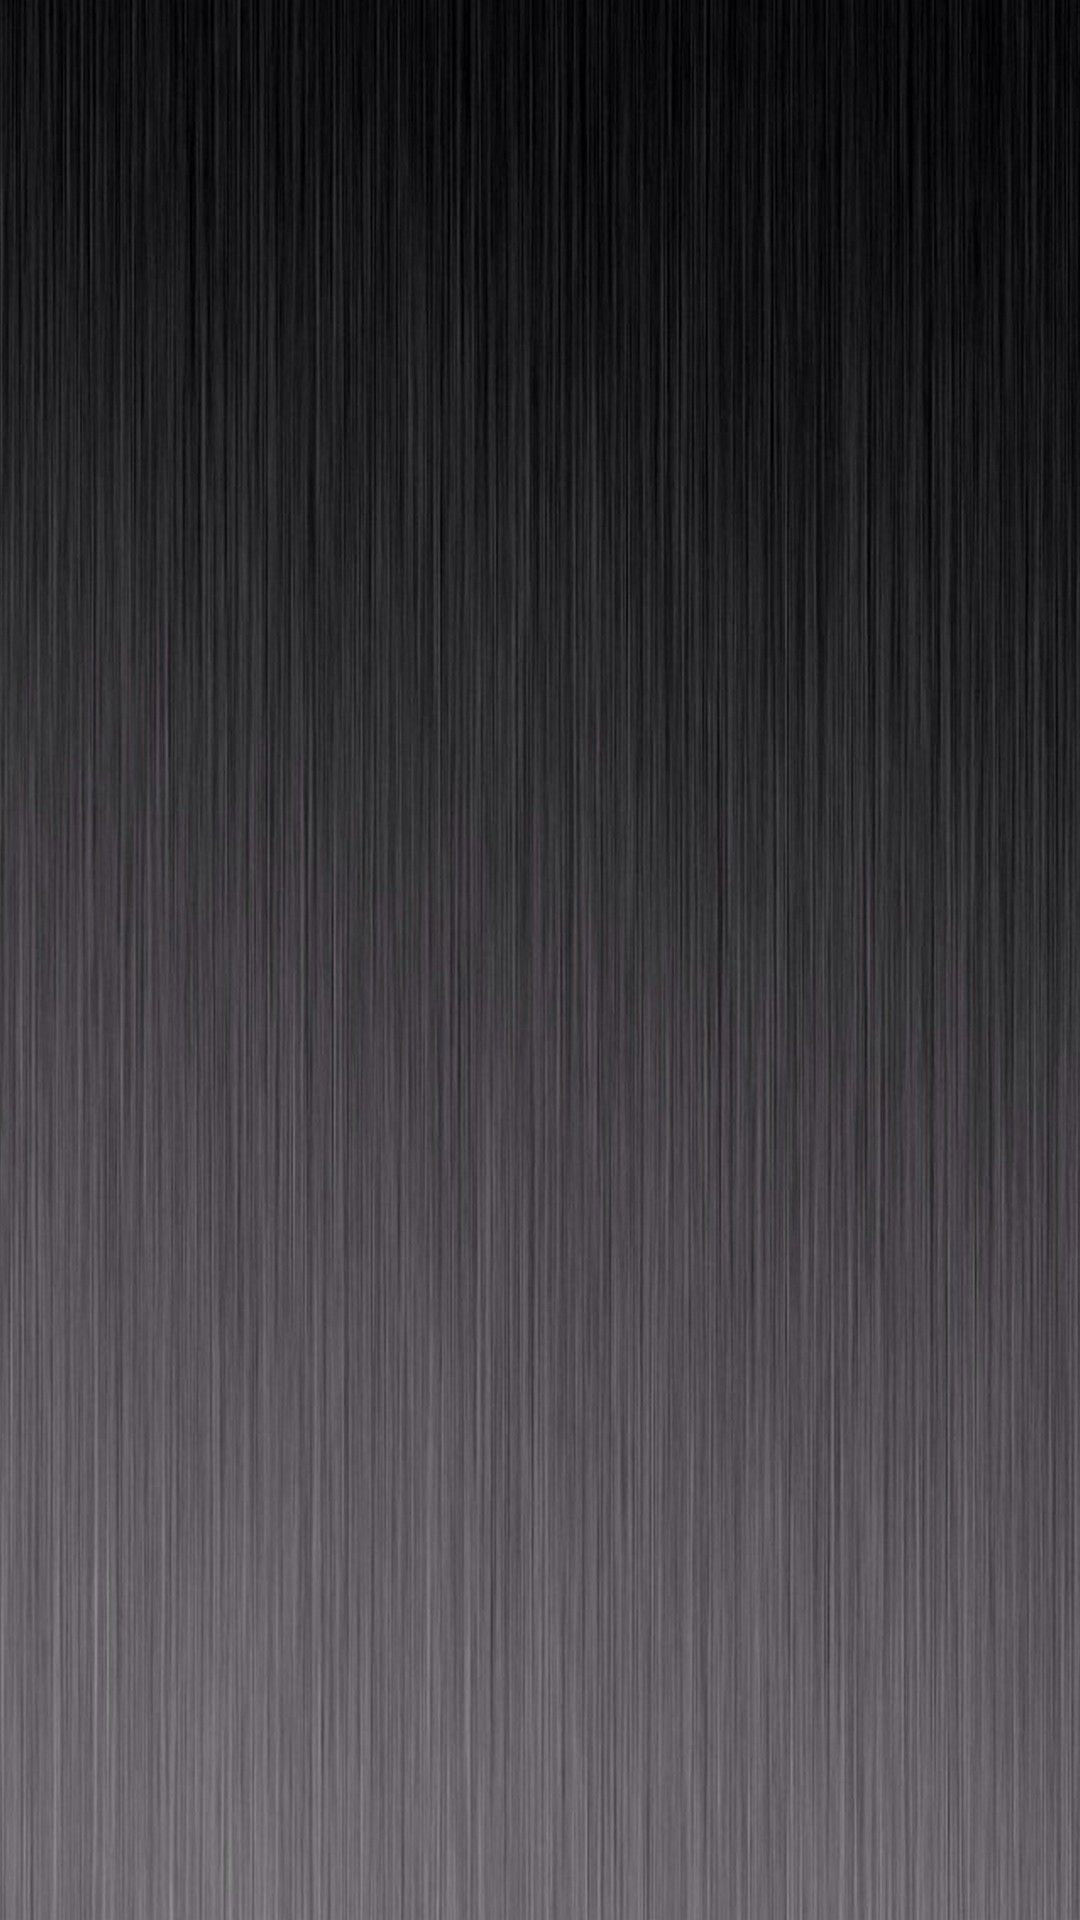 Some Tips For Getting The Best Grey iPhone Wallpaper